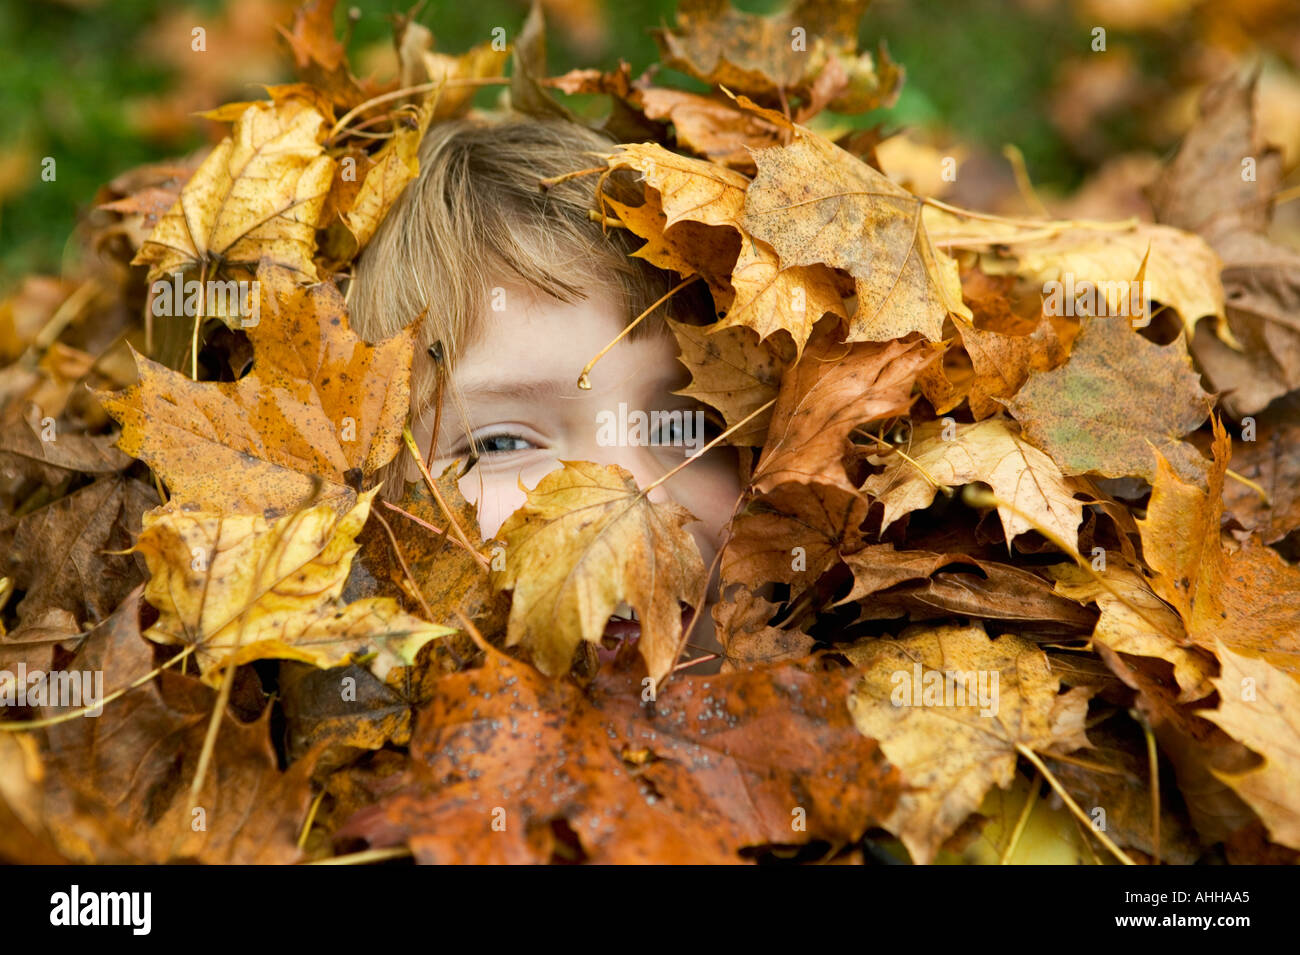 Girl 5 peeking through a pile of leaves in which she is buried playing hide and seek Stock Photo